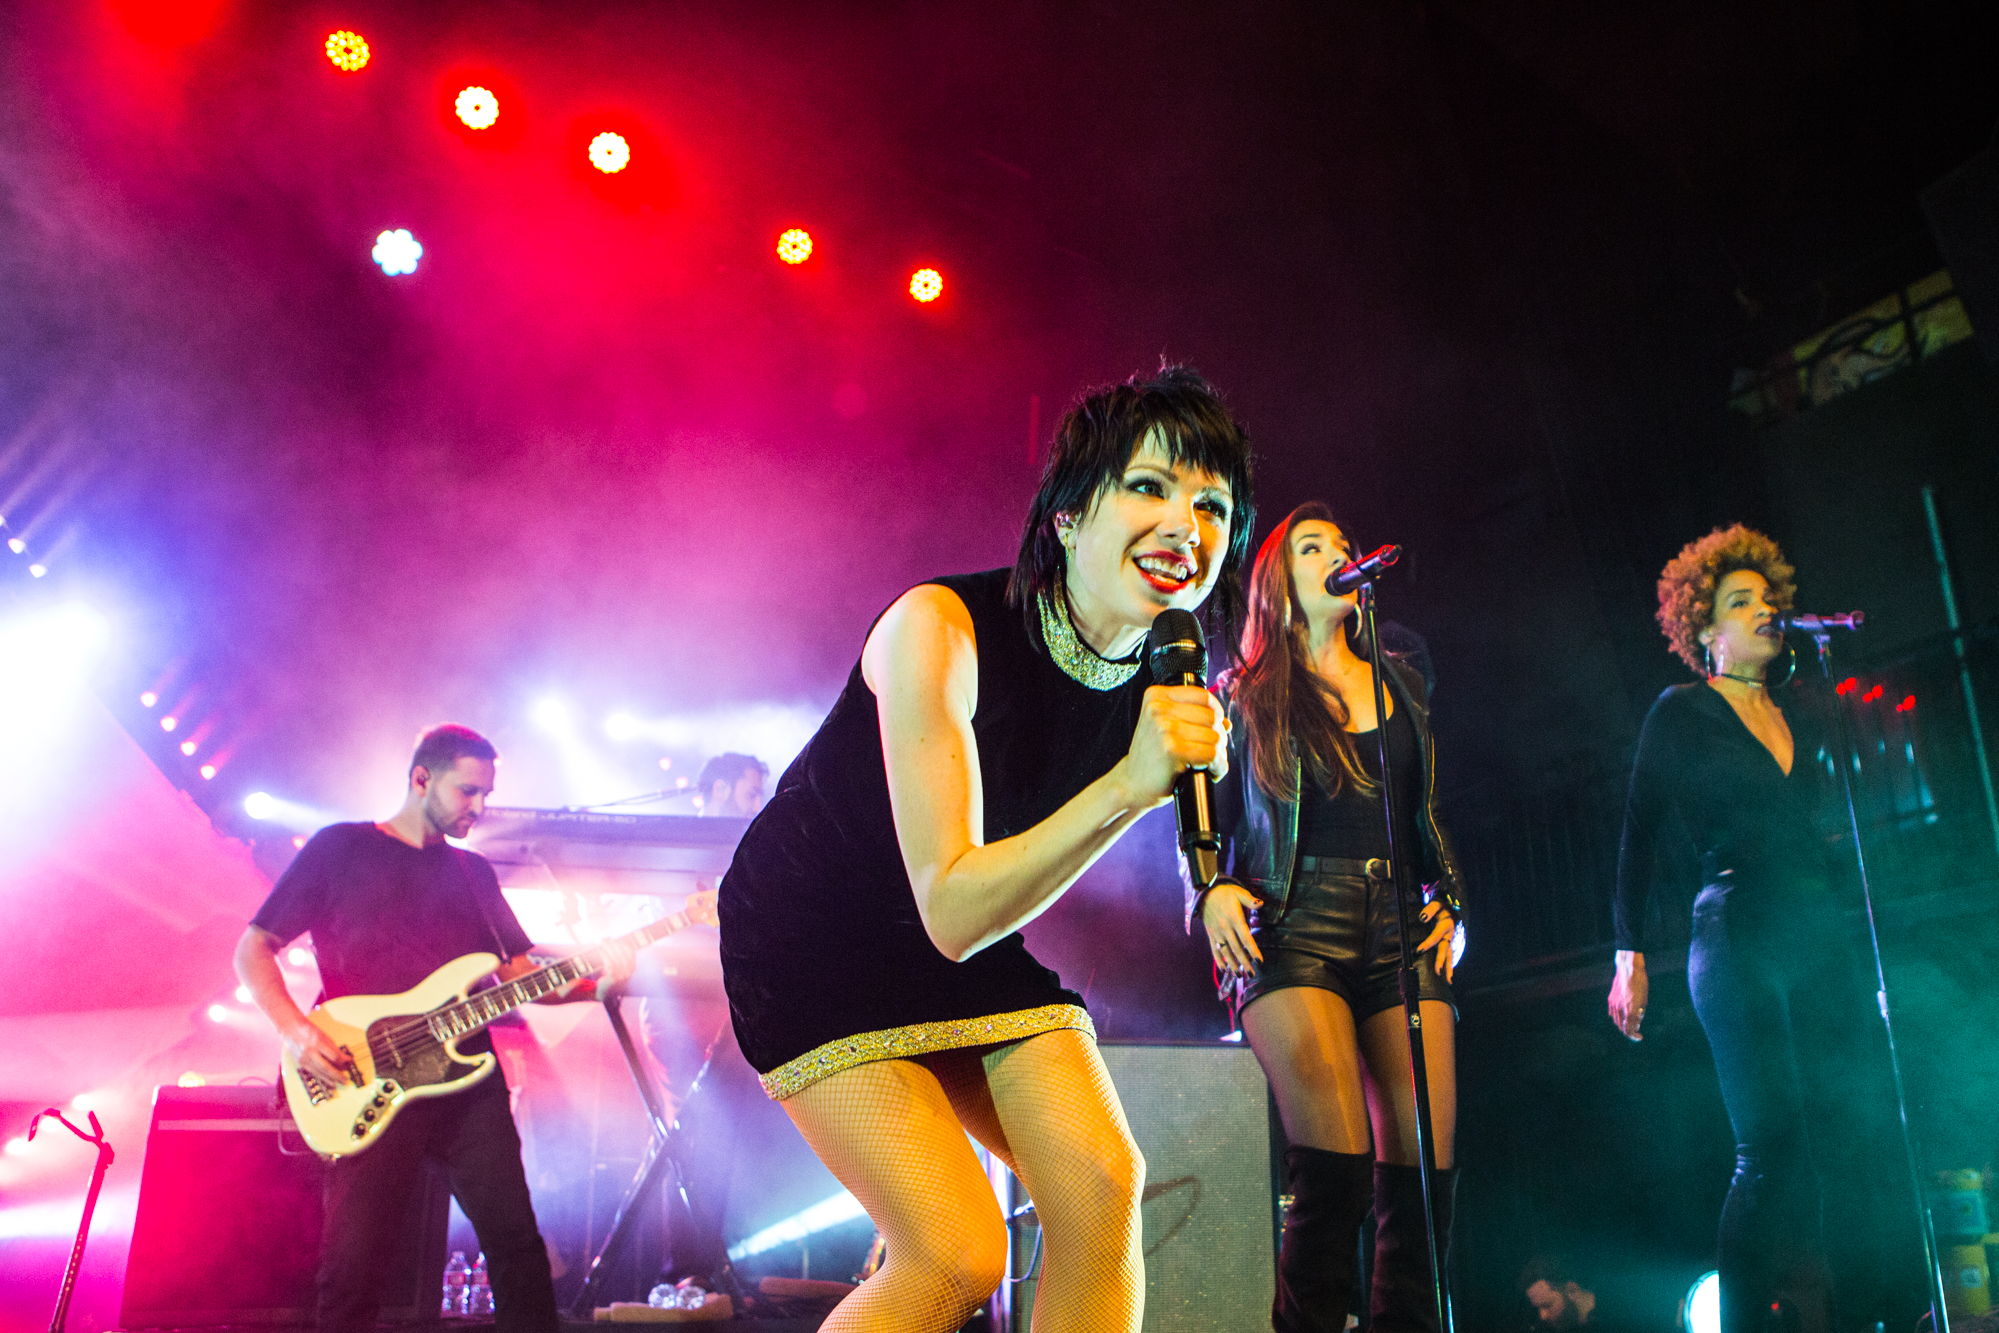 13 carly rae jepsen Carly Rae Jepsen on the Art That Defined Her Decade